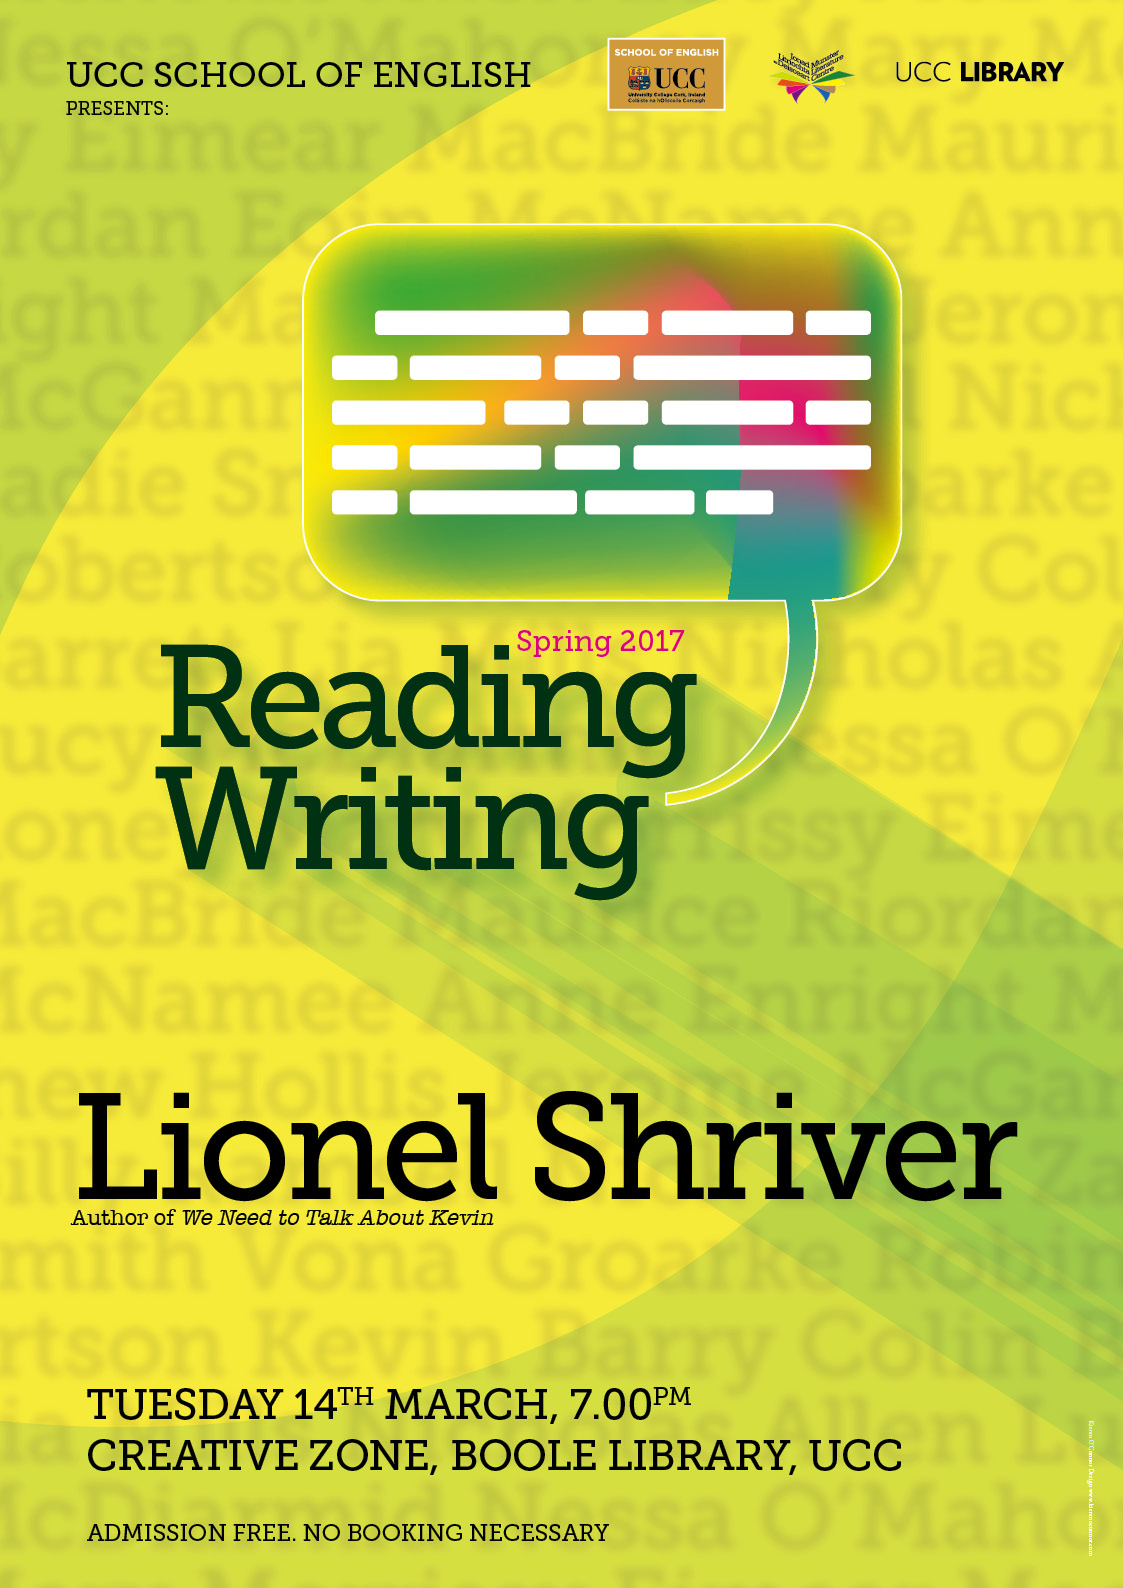 Lionel Shriver to read at UCC